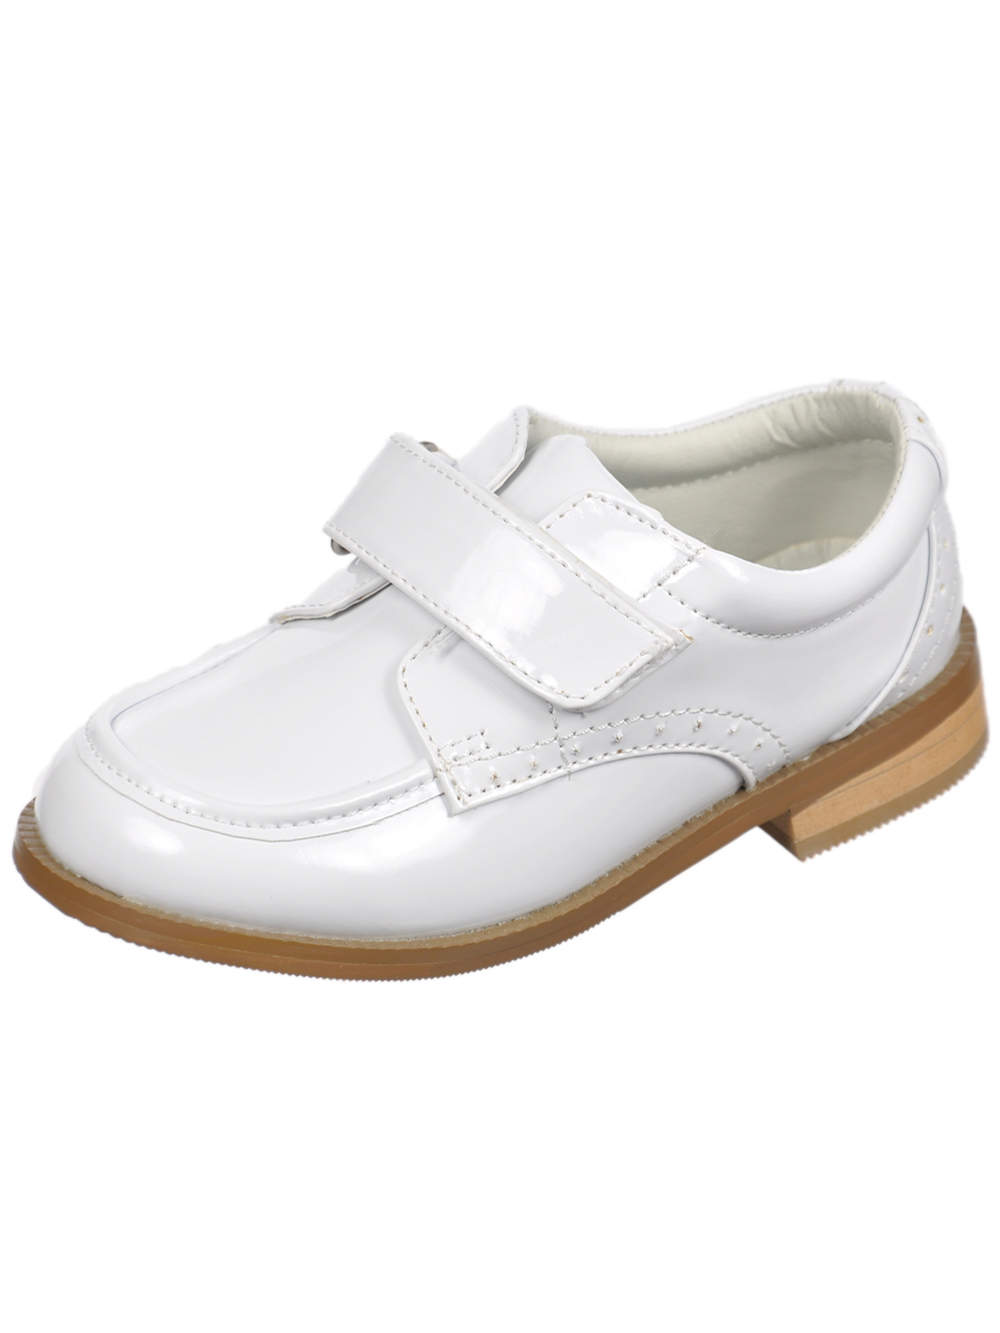 Image of Josmo Oreille Brogue Dress Shoes Toddler Boys Sizes 5  12